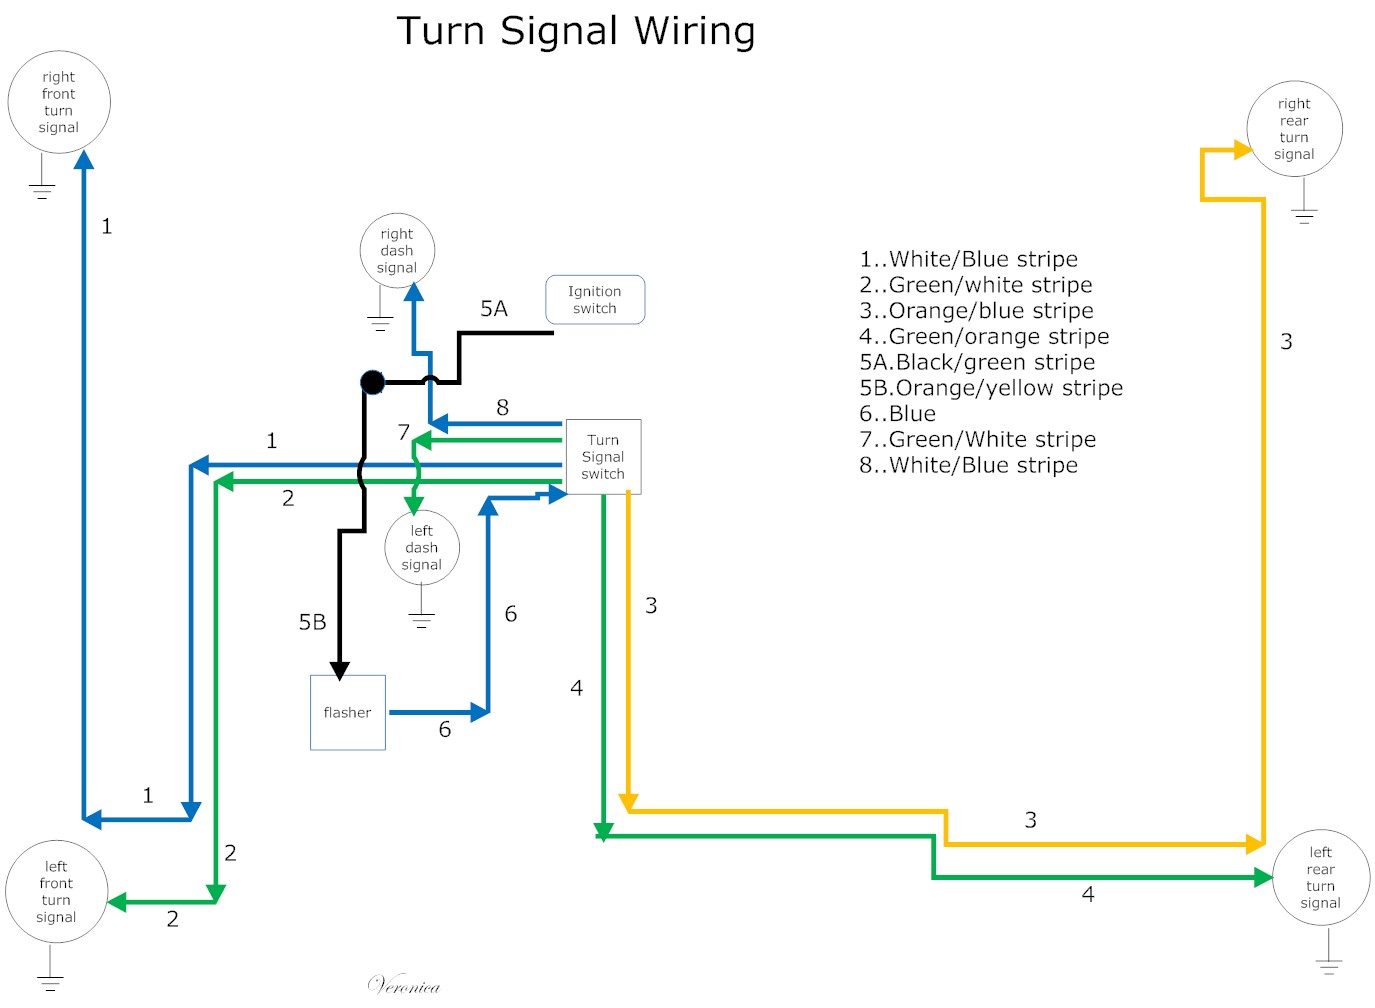 Turn+signal+Wiring the care and feeding of ponies 1965 mustang wiring diagrams 65 mustang tail light wiring diagram at crackthecode.co